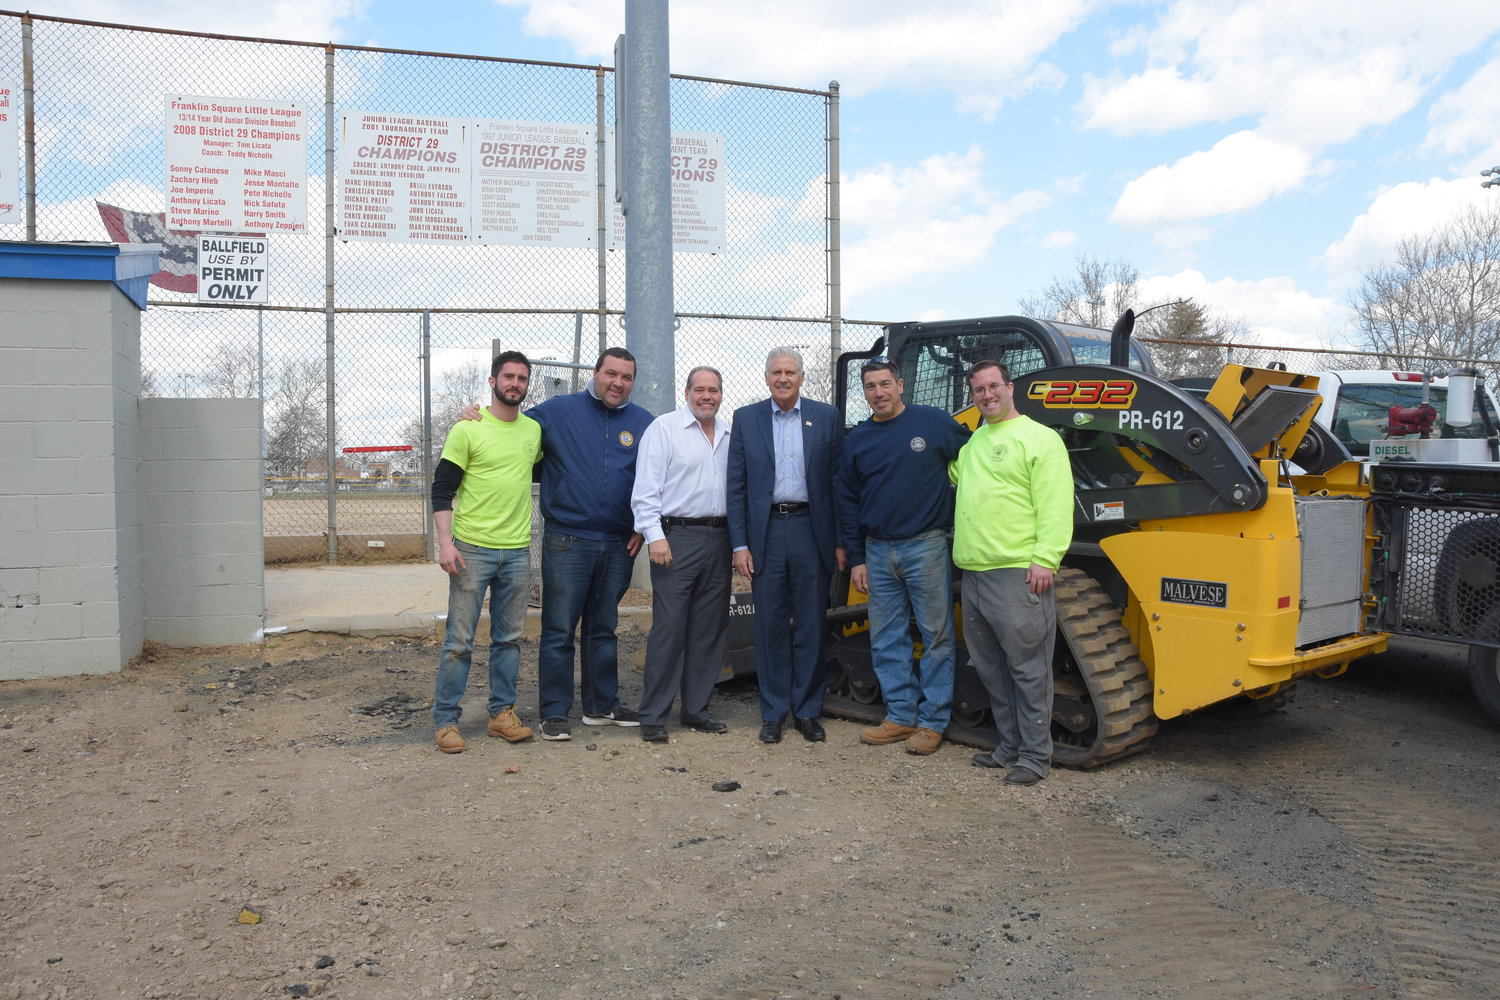 Town of Hempstead Department of Highways Commissioner Thomas Toscano, third to the left, and Councilman Bruce Blakeman, right, joined Parks and Recreation employees to oversee renovations at Rath Park.